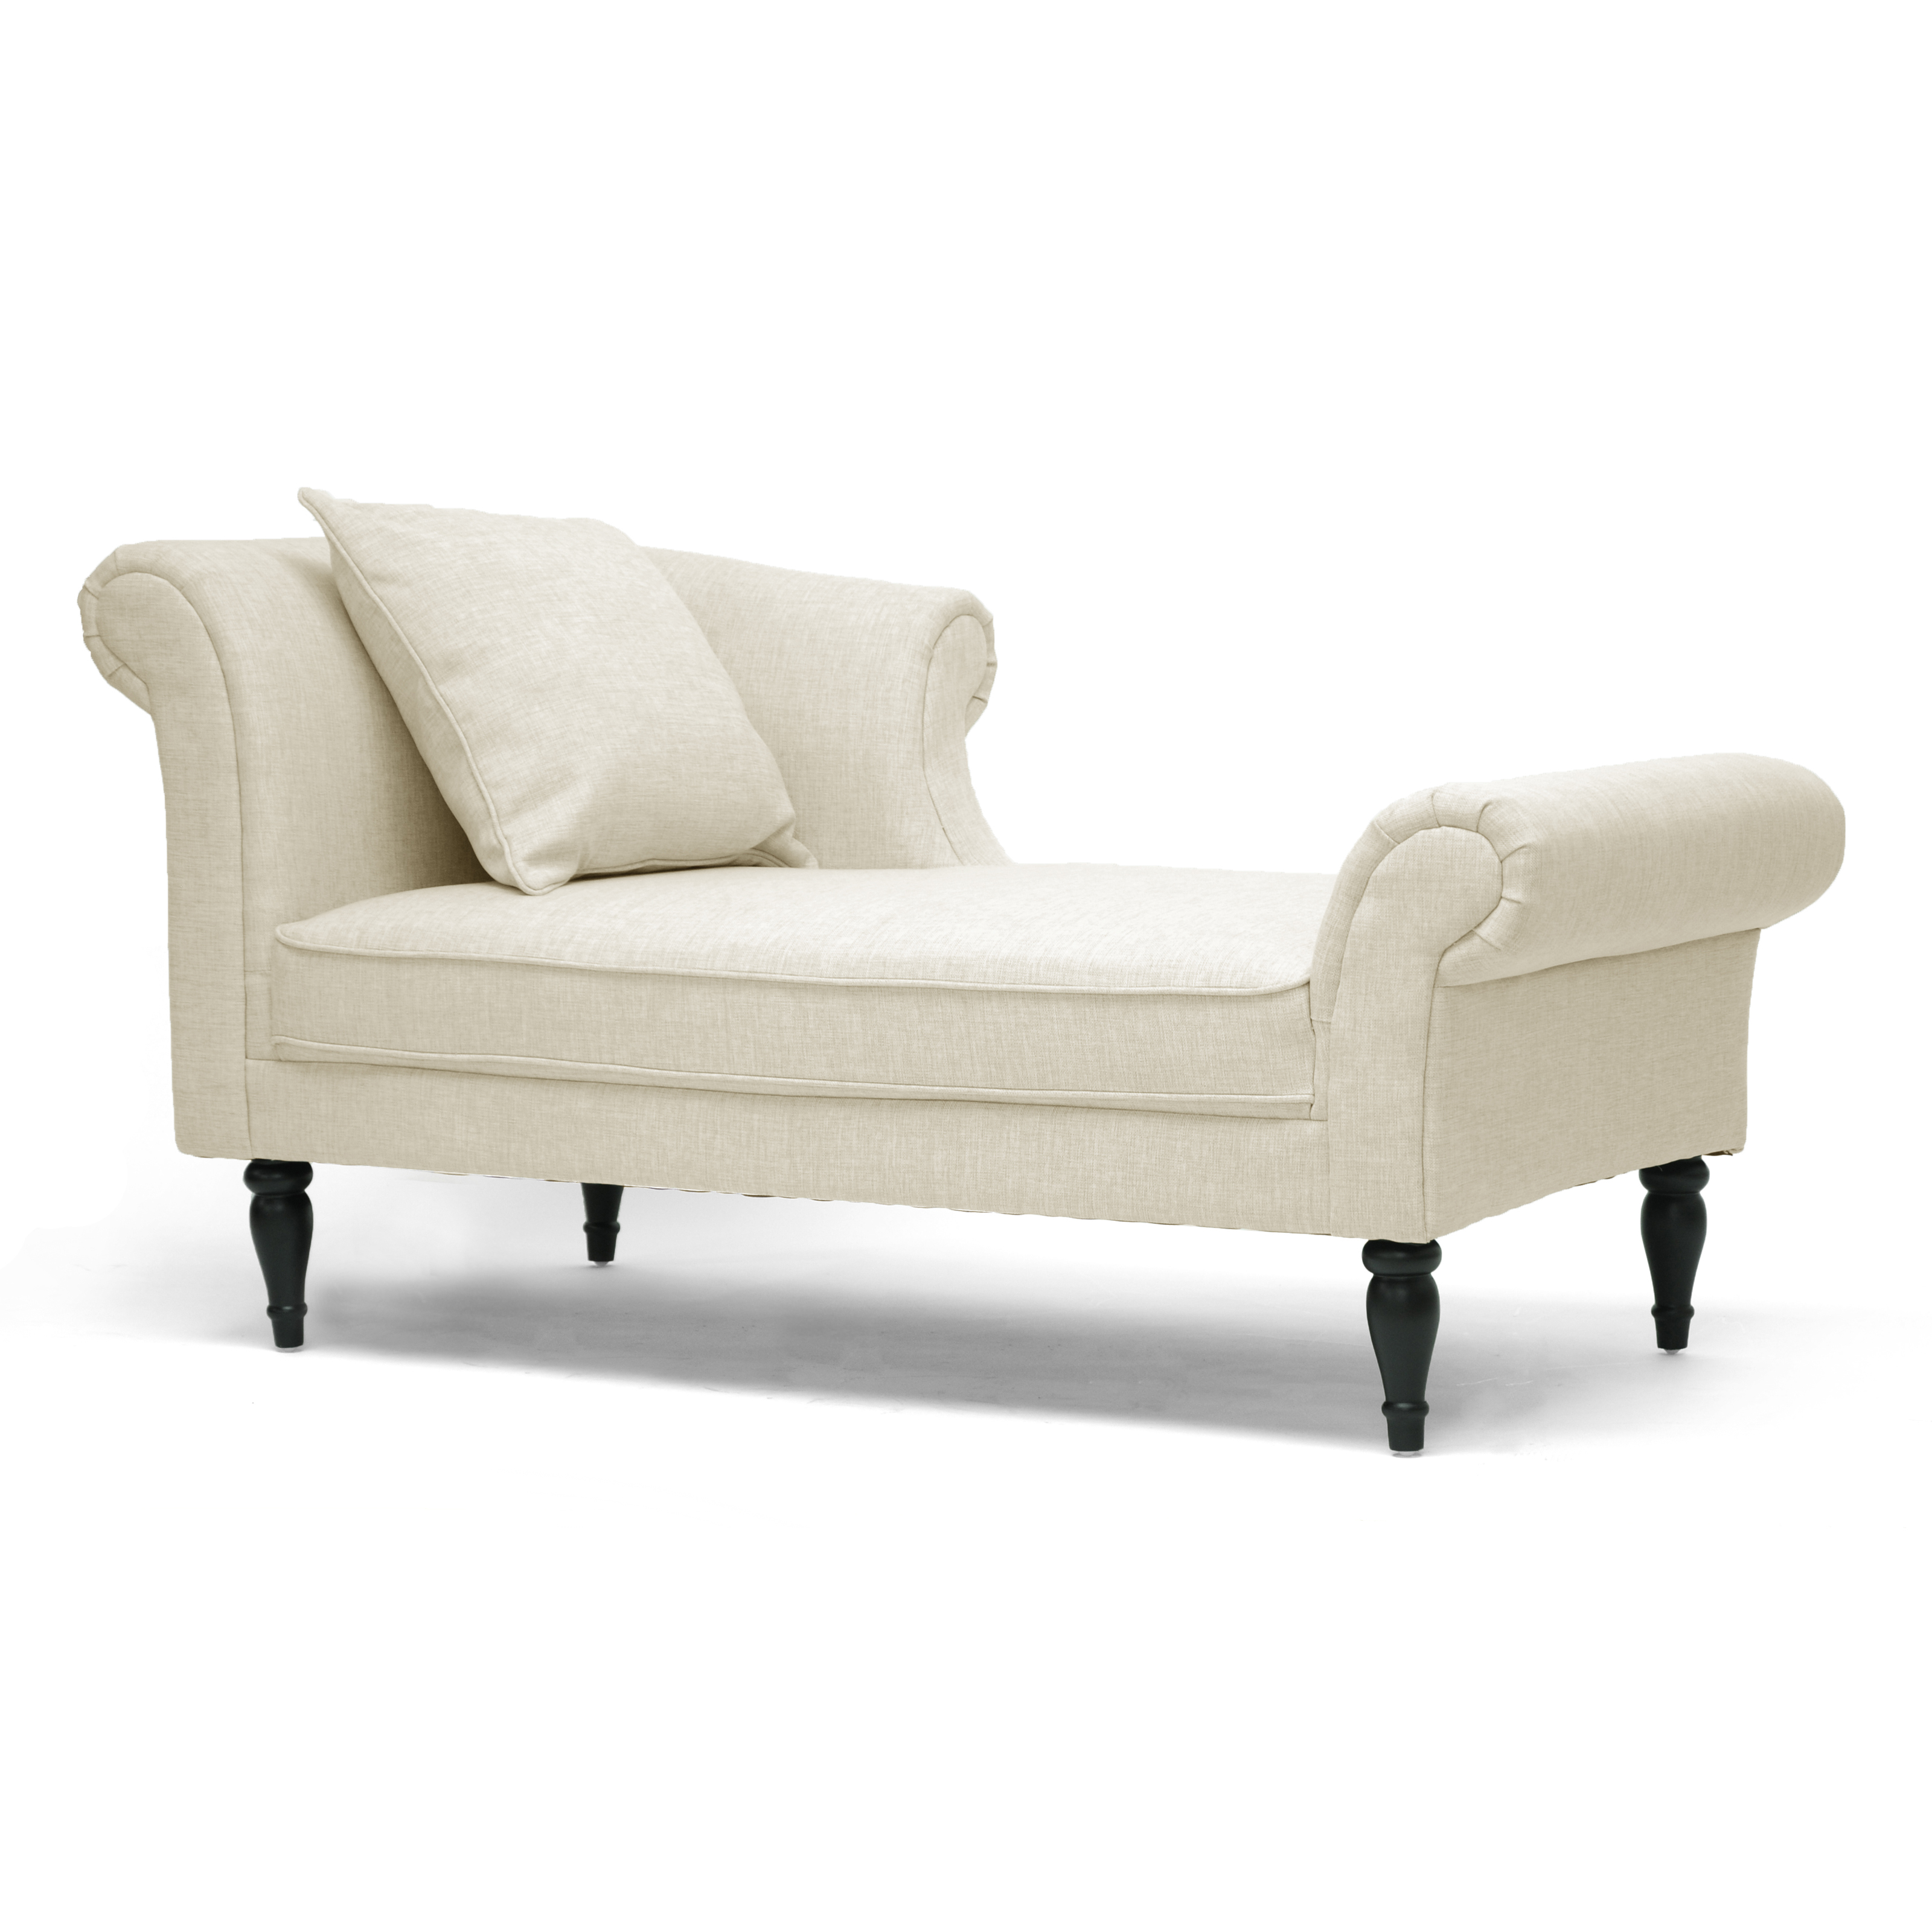 Baxton studios lucille victorian chaise indoor chaise for Chaise lounge couch